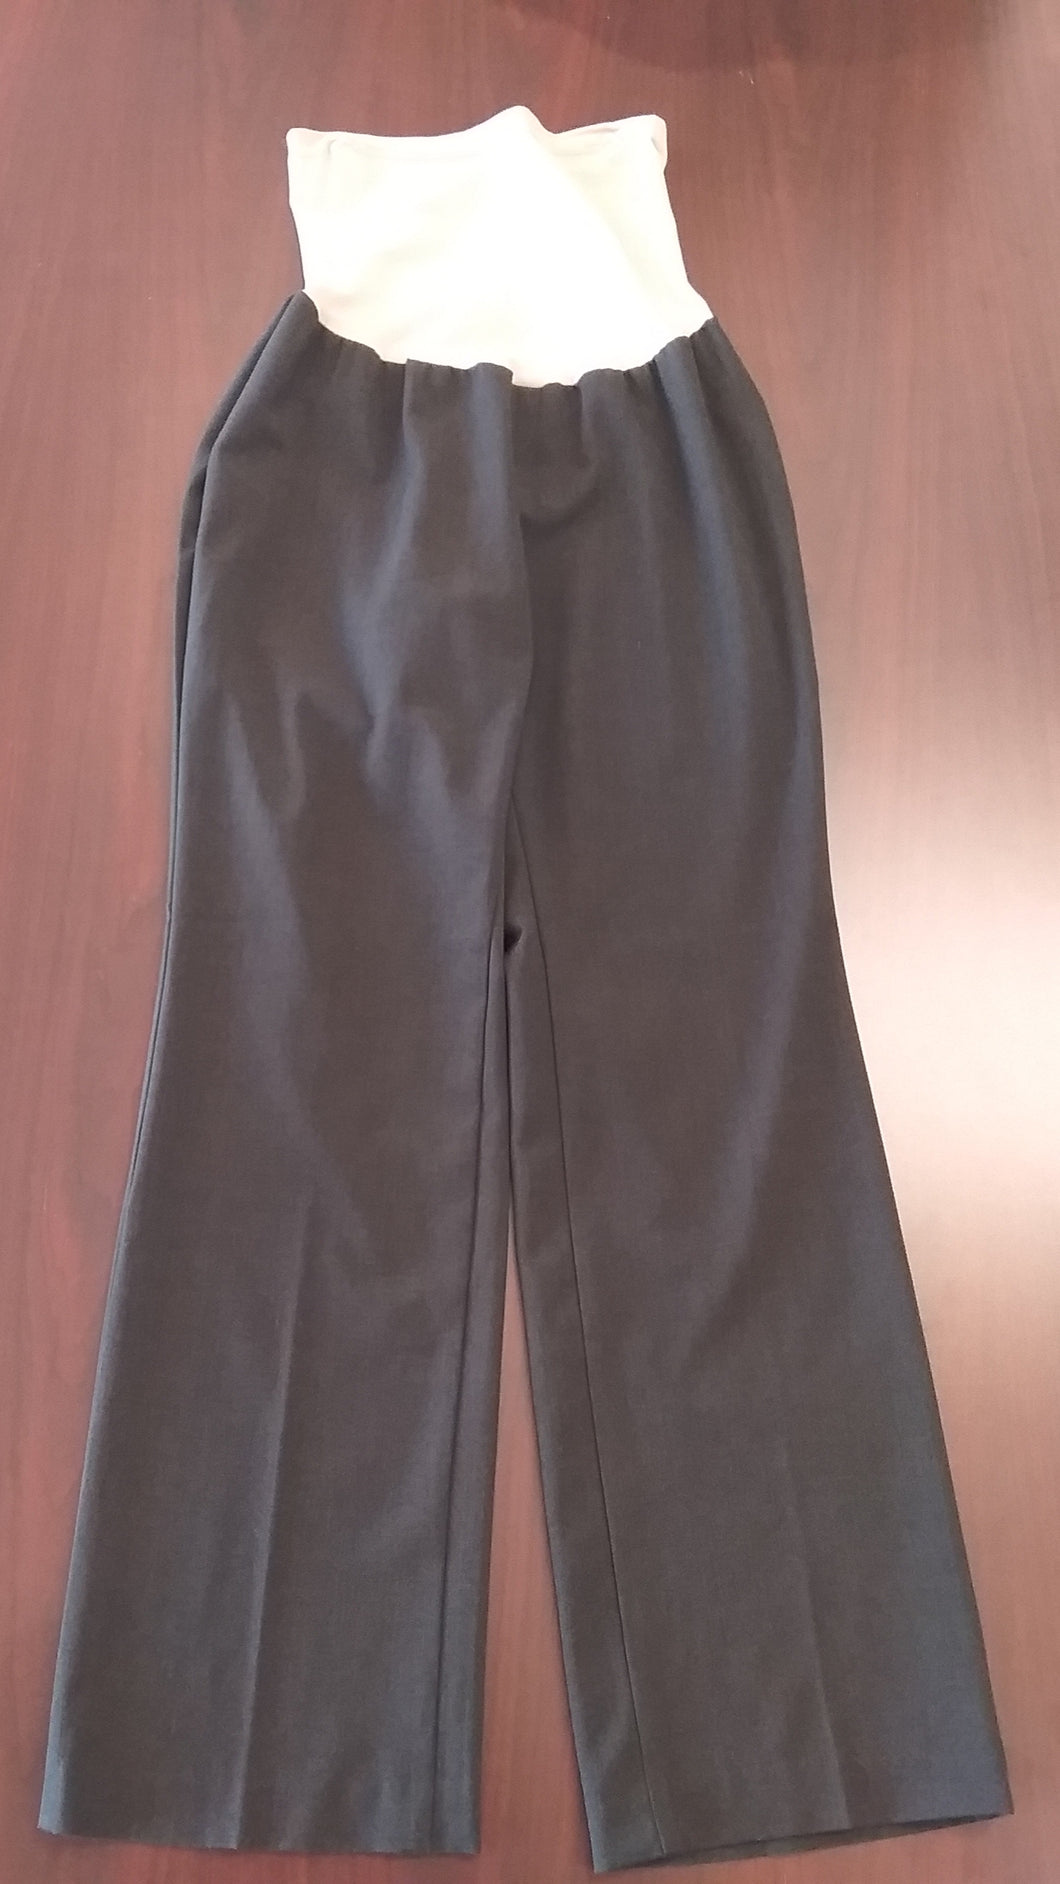 Large Full Panel Charcoal Gray Maternity Slacks